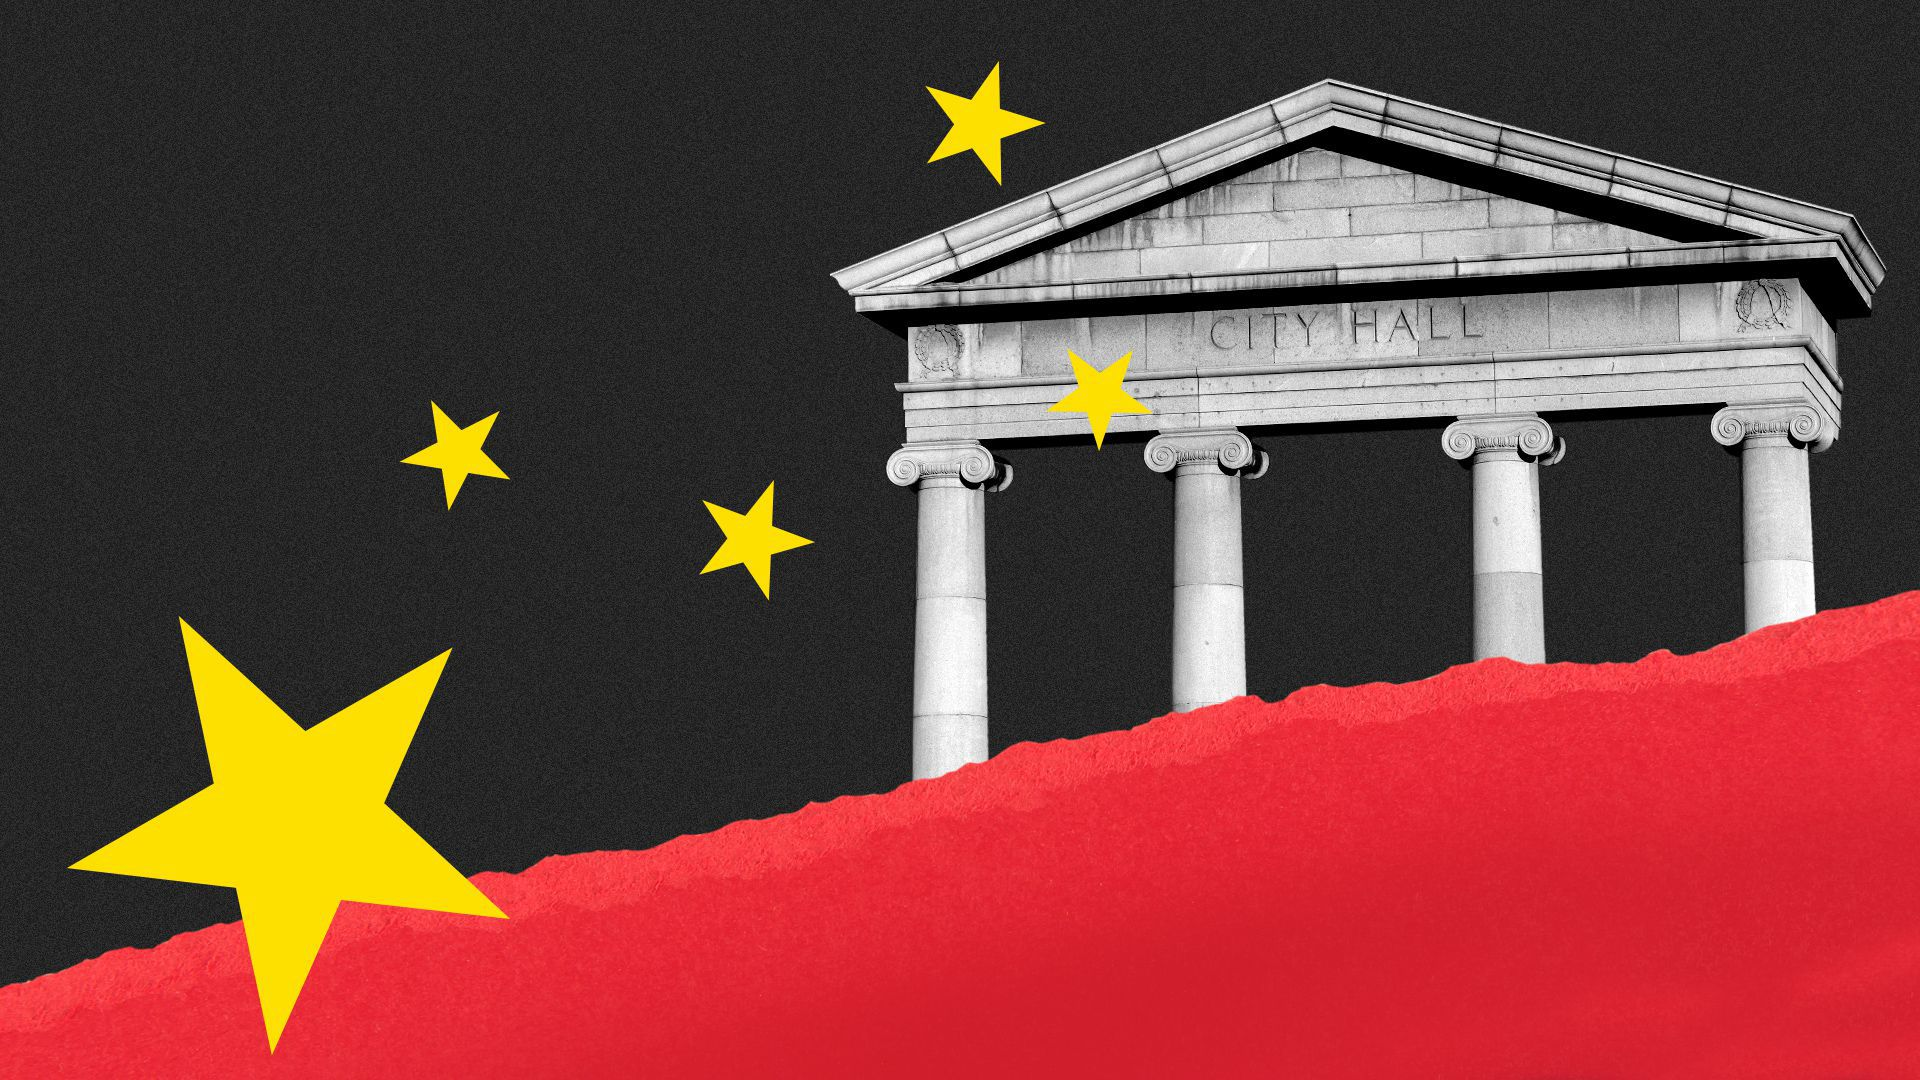 """Between the lines on Chinese strategy: """"Use the local to surround the center"""" - Axios"""